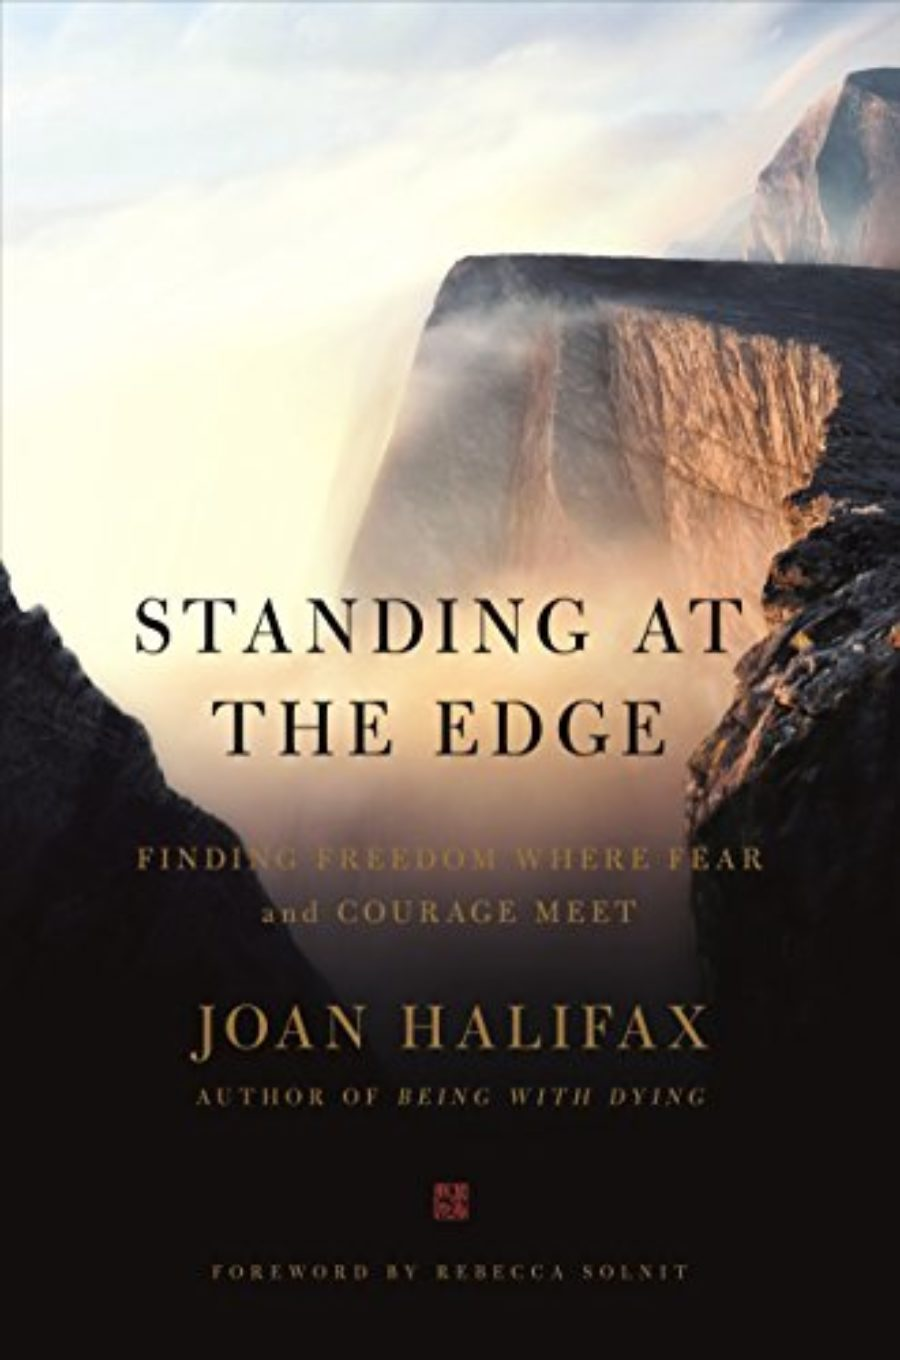 Joan Halifax Buoyancy Rather Than Burnout In Our Lives The On